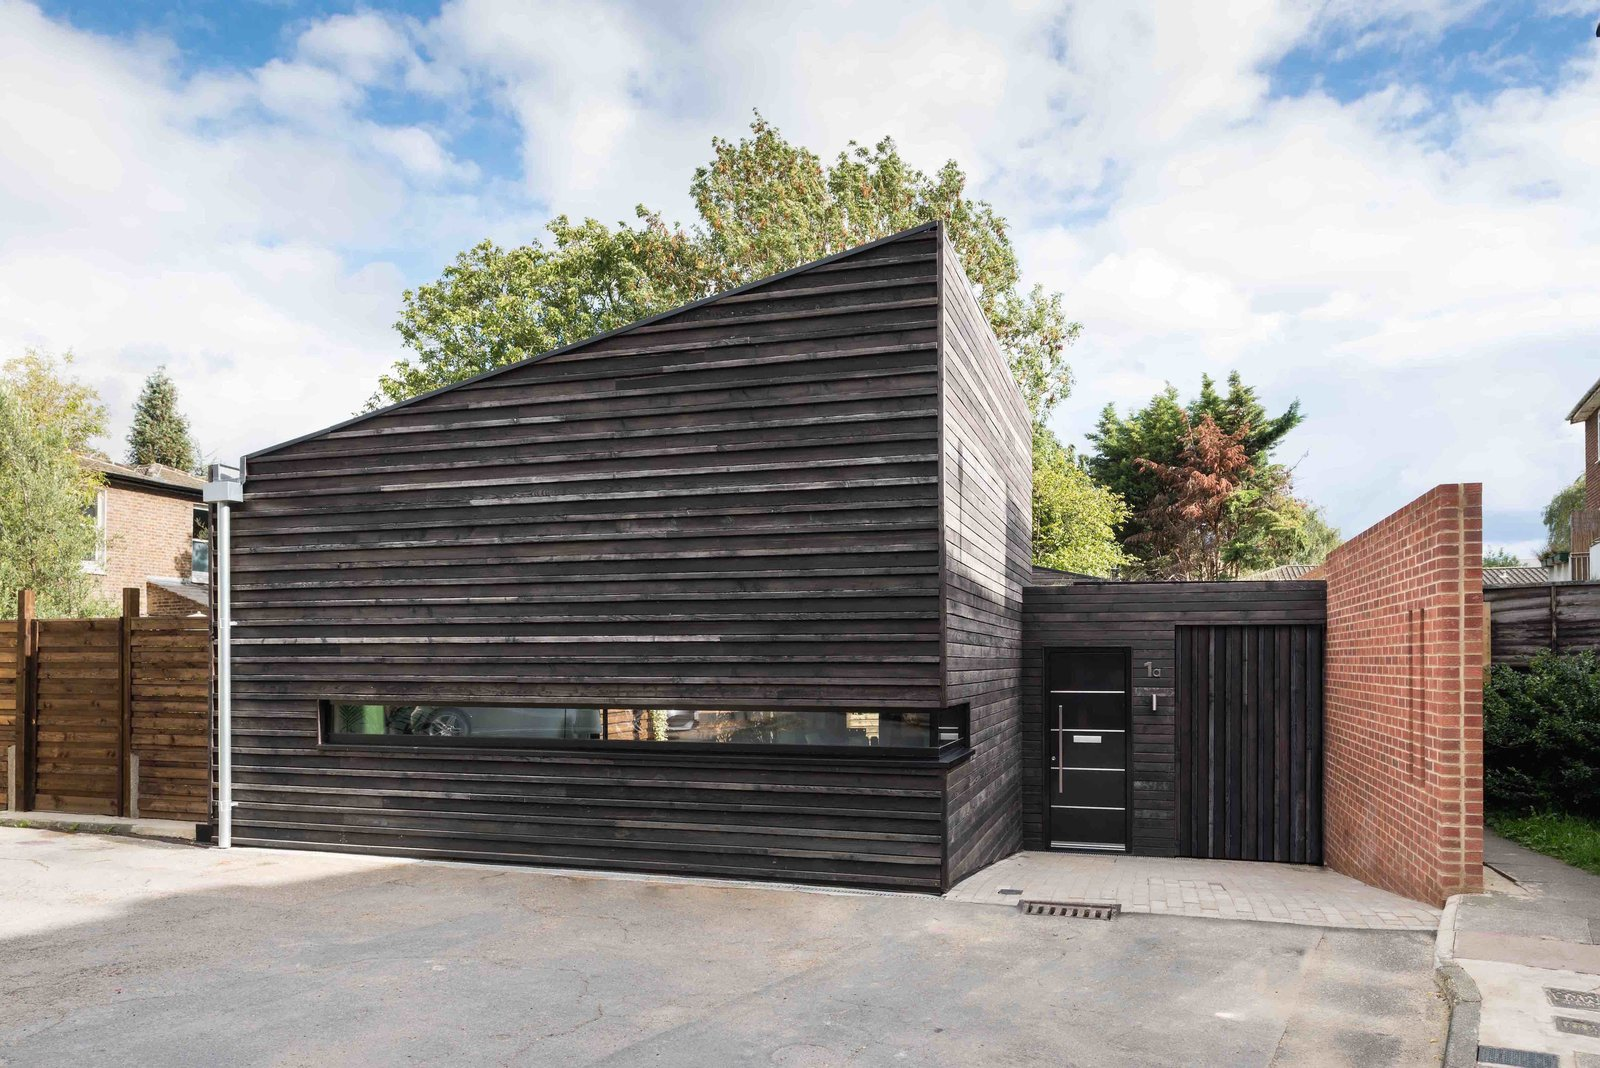 Located on a site where two obsolete garages formerly stood is a 935-square-foot prefab home in London's borough of Richmond.   Designed by London-based practice RDA Architects in collaboration with prefab and modular builders Boutique Modern, the building is clad in Shou Sugi Ban timber with fit-outs selected by the owner. Tagged: Exterior, Wood Siding Material, and Prefab Building Type.  Photo 4 of 10 in Dwell's Top 10 Prefabs of 2017 from This London Prefab Made of 7 Modules Was Raised in Just One Day